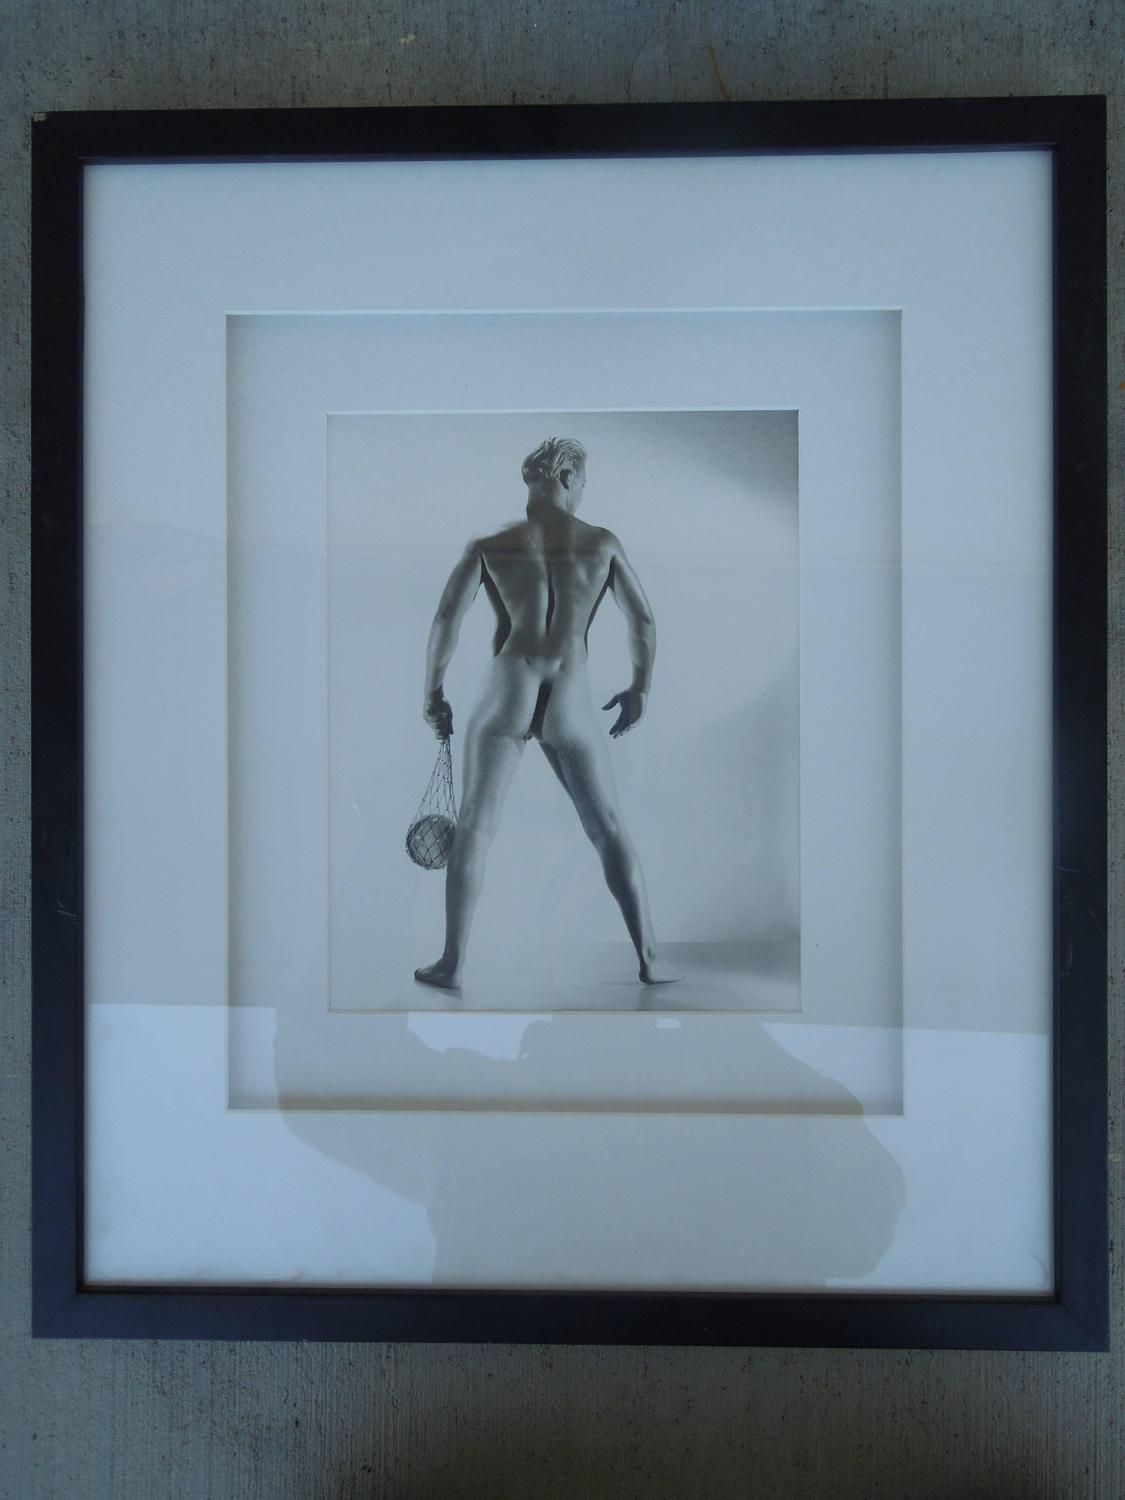 Original Mid Century Male Beefcake Photos By Bruce Bellas Aka Bruce Of La For Sale At 1stdibs